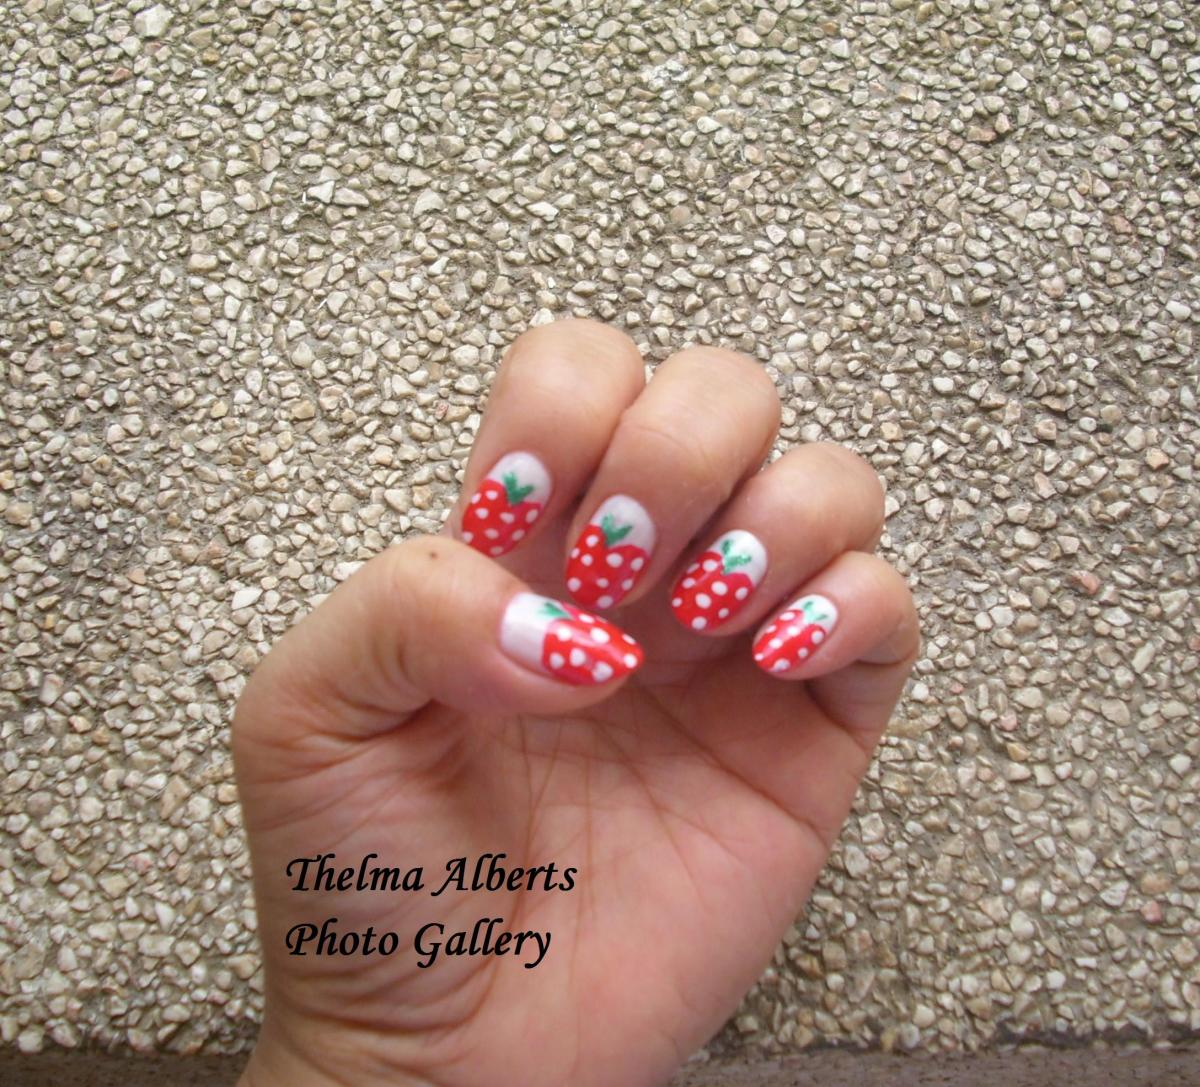 Strawberry Manicure after paraffin wax treatment.